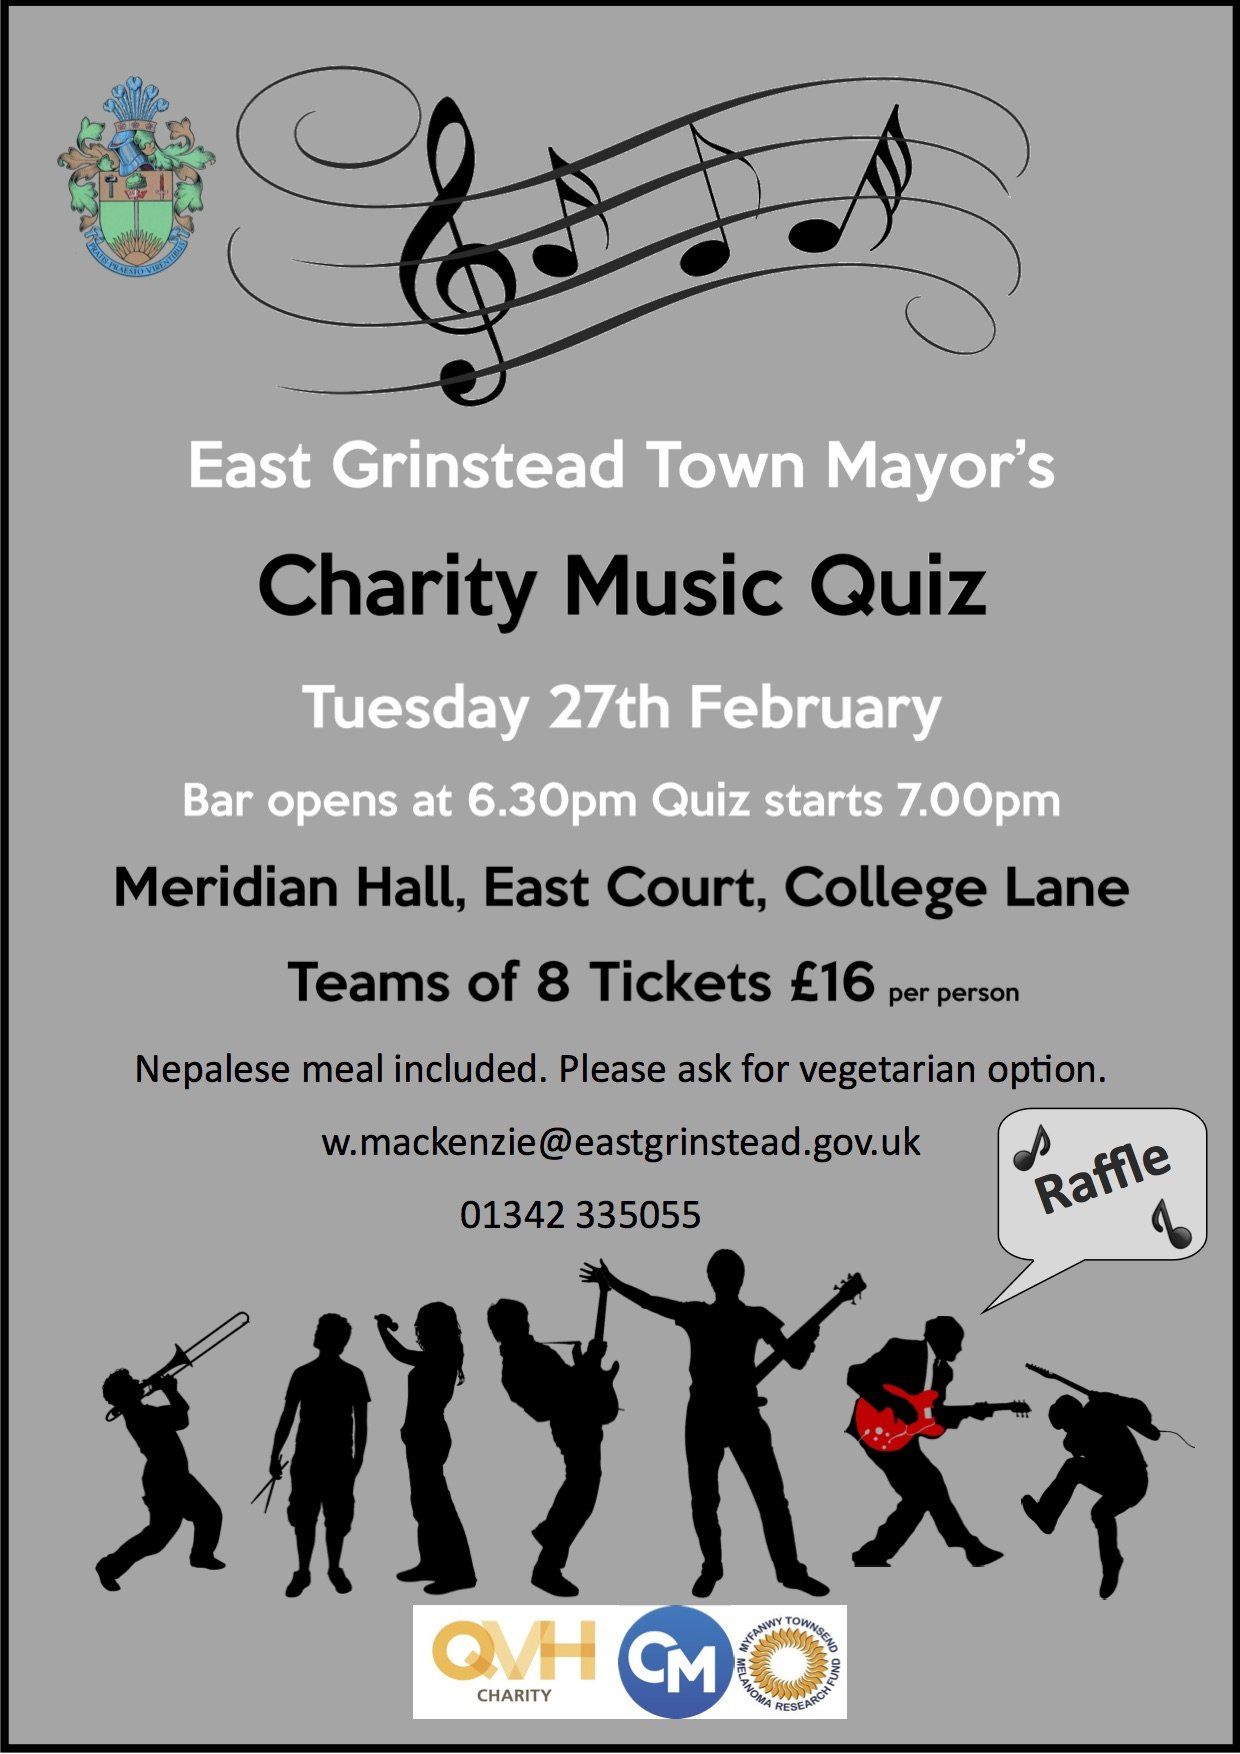 East Grinstead Town Mayor's Charity Quiz